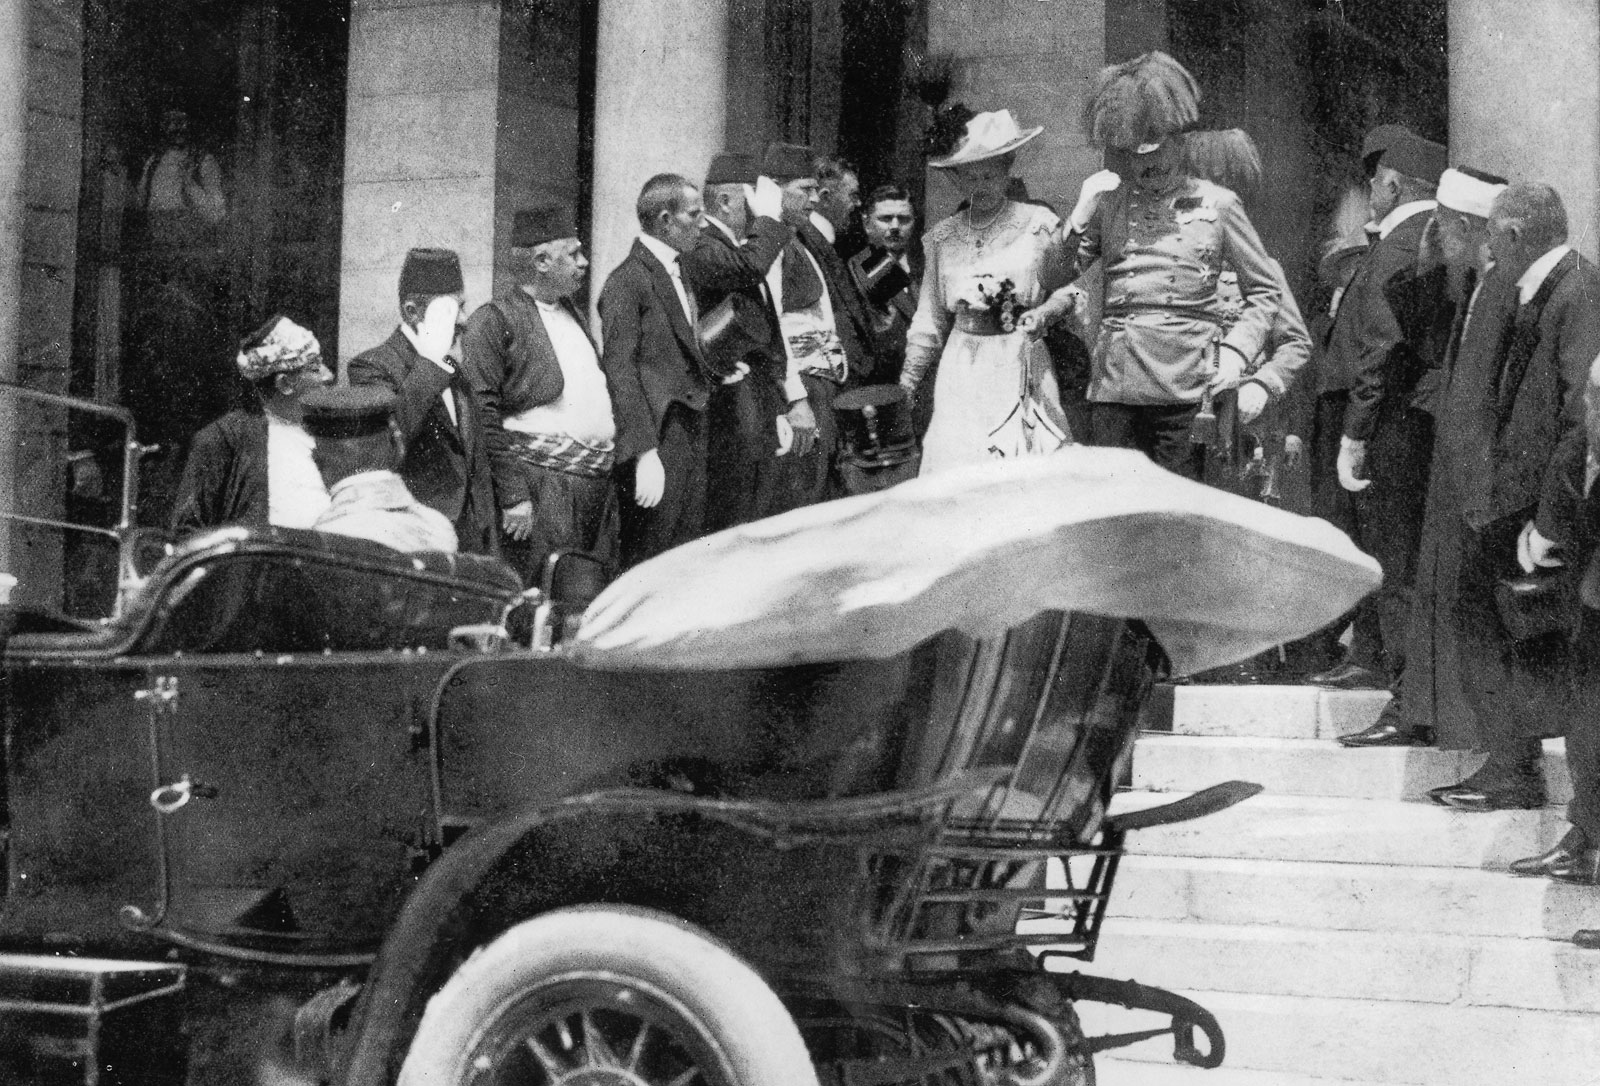 c. 28 June 1914: The assassination of Archduke Franz Ferdinand pic 1 pic 2 pic 3 pic 4 funeral